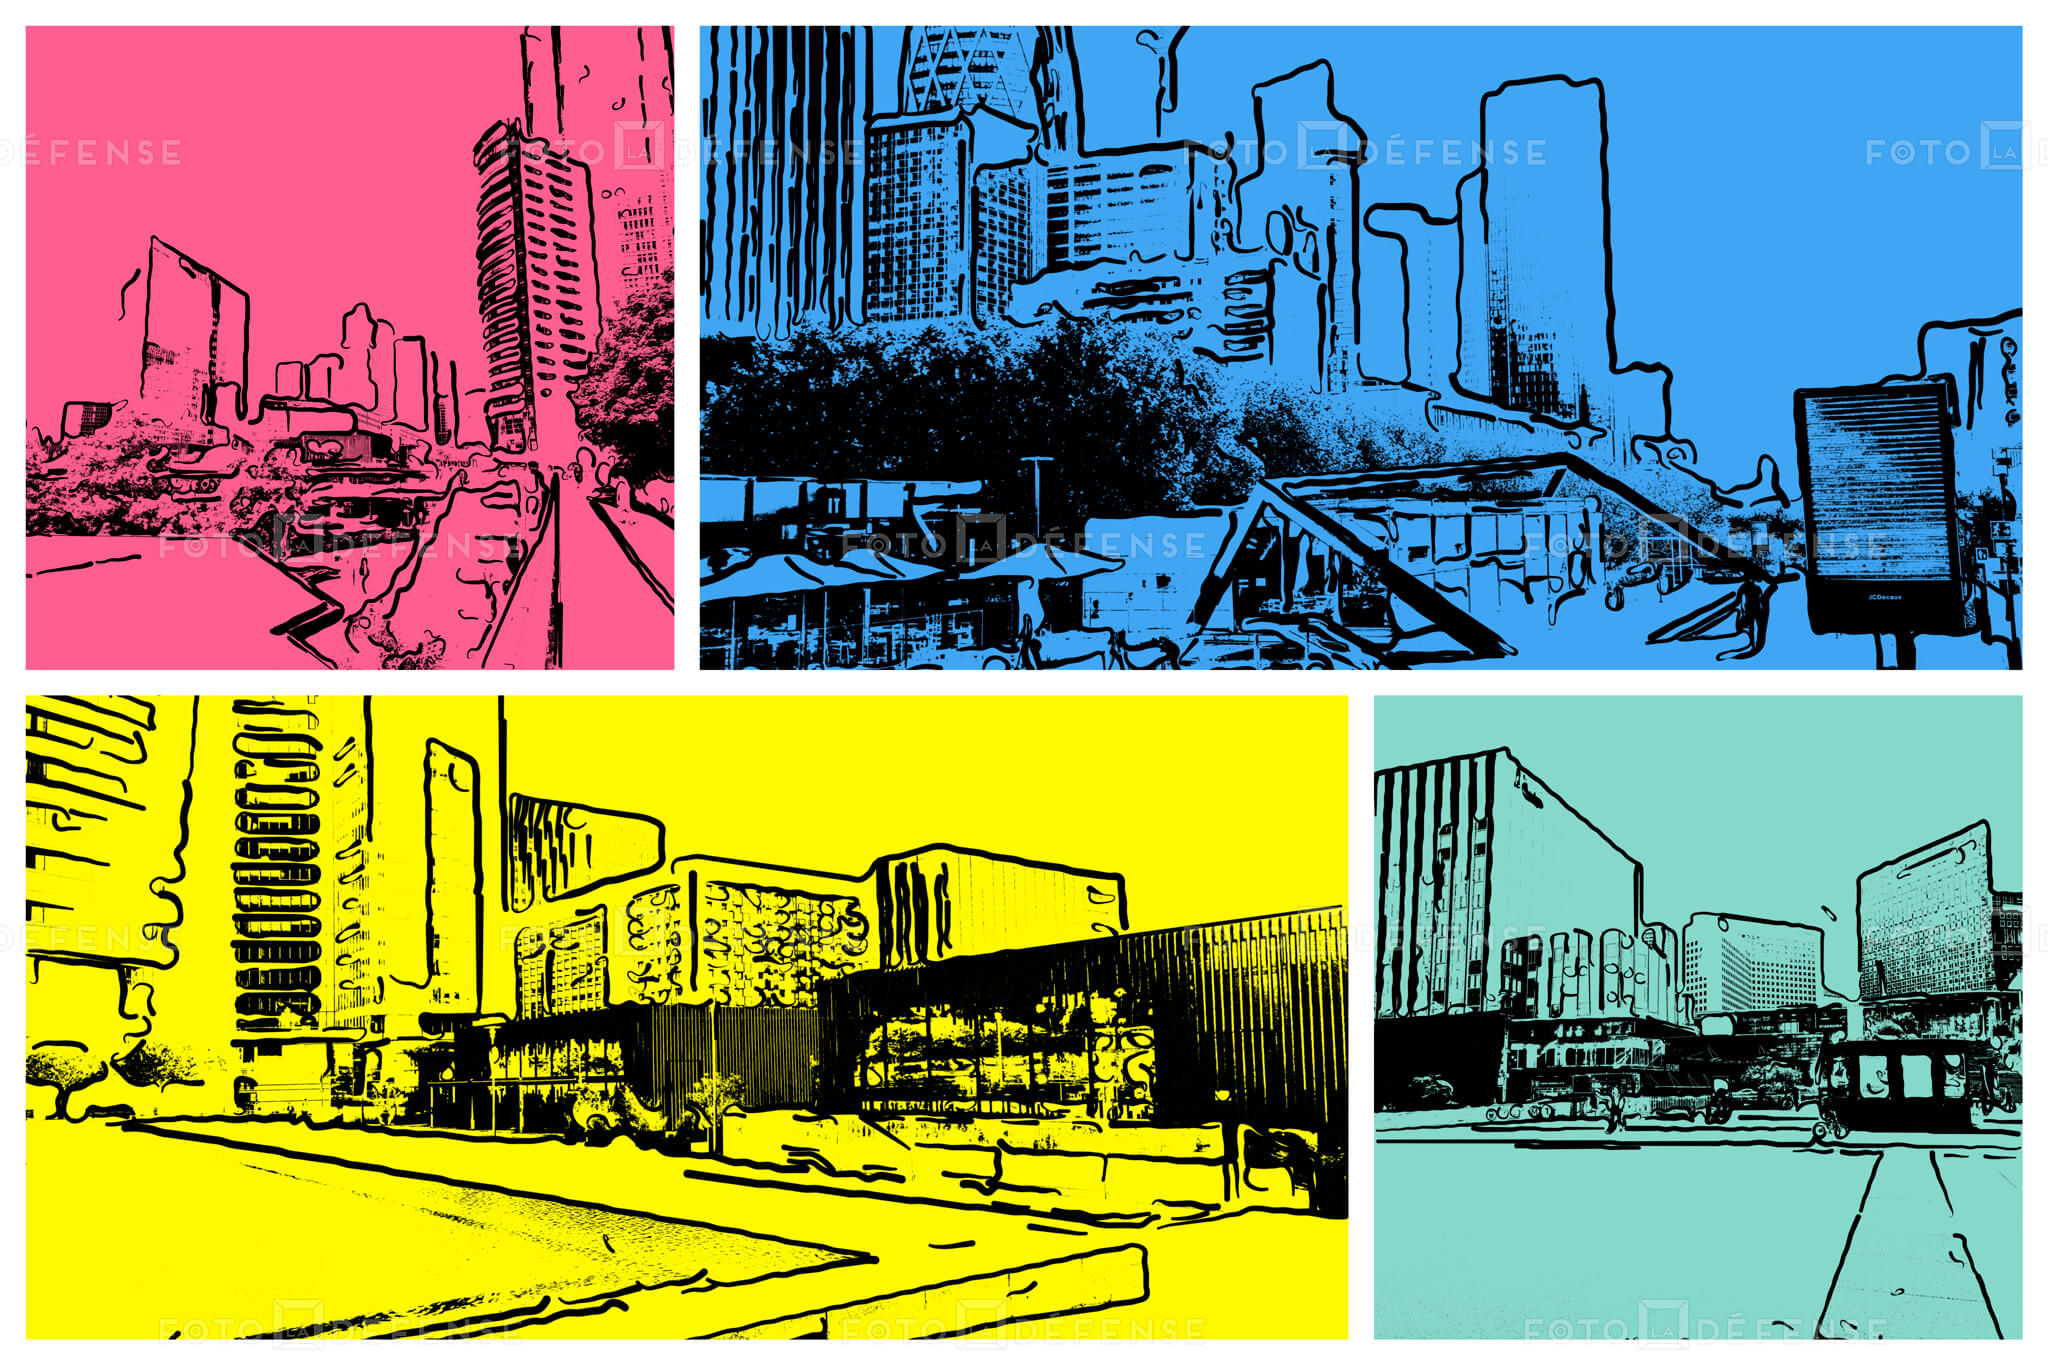 Paris La Défense pop art